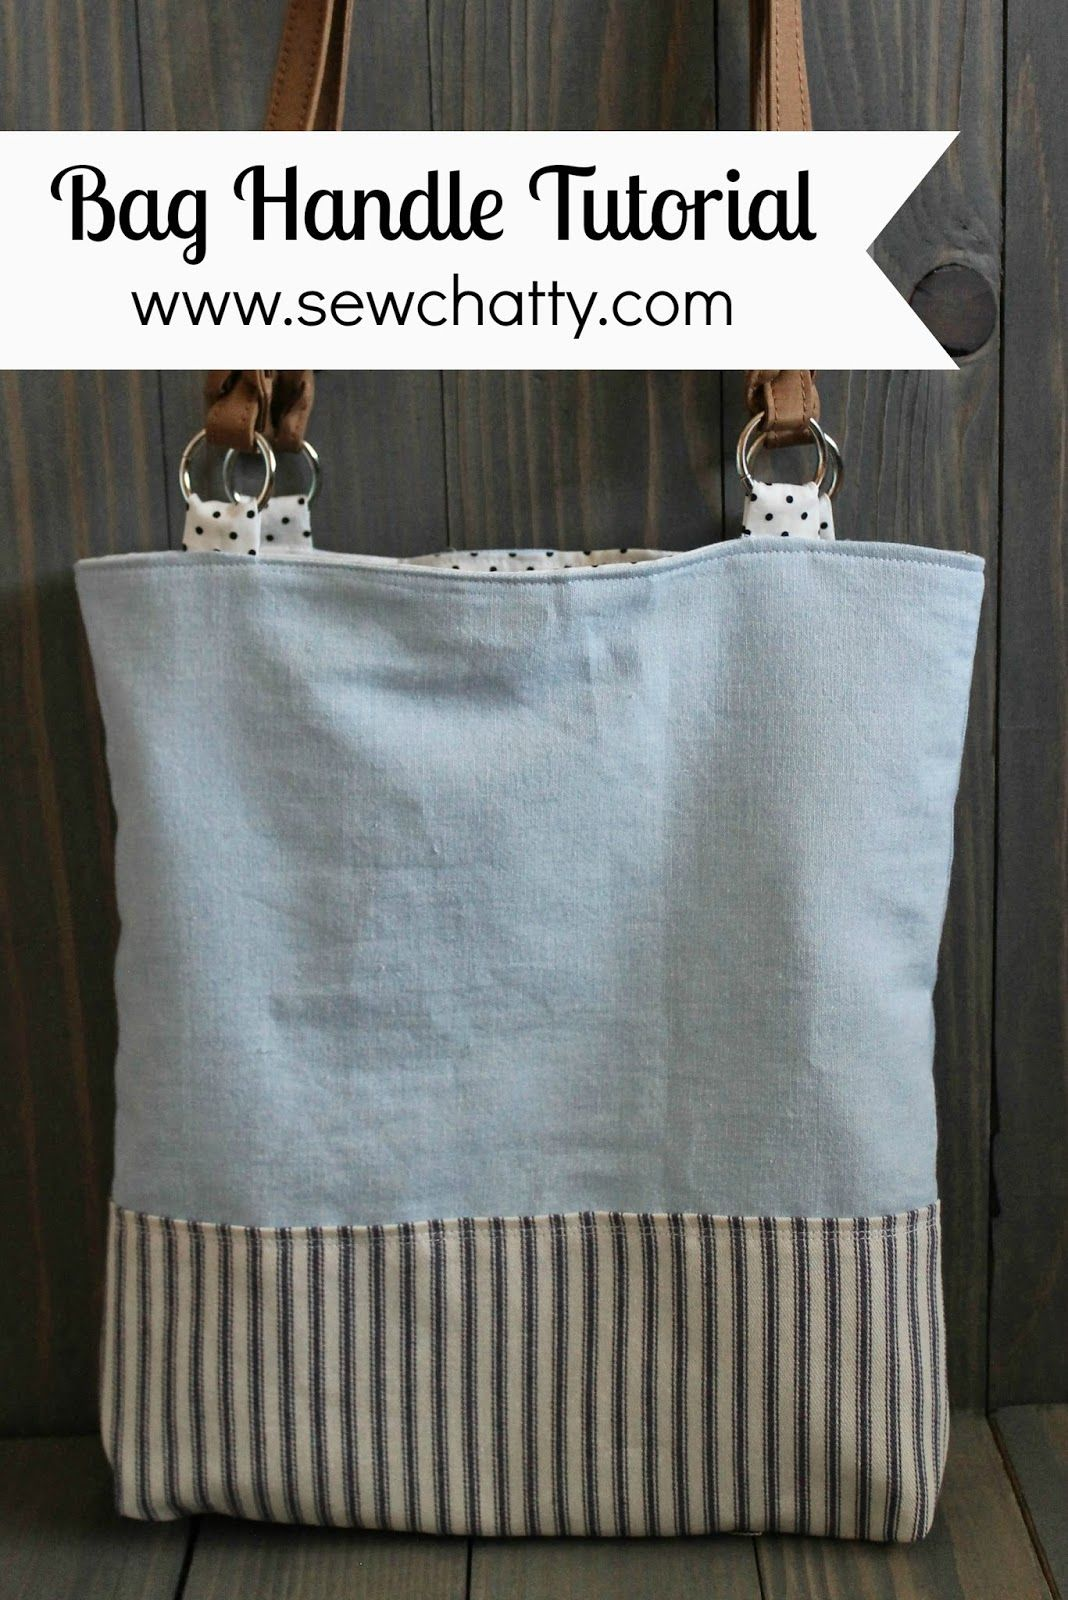 Sew Chatty Tutorial Adding Commercial Handles To